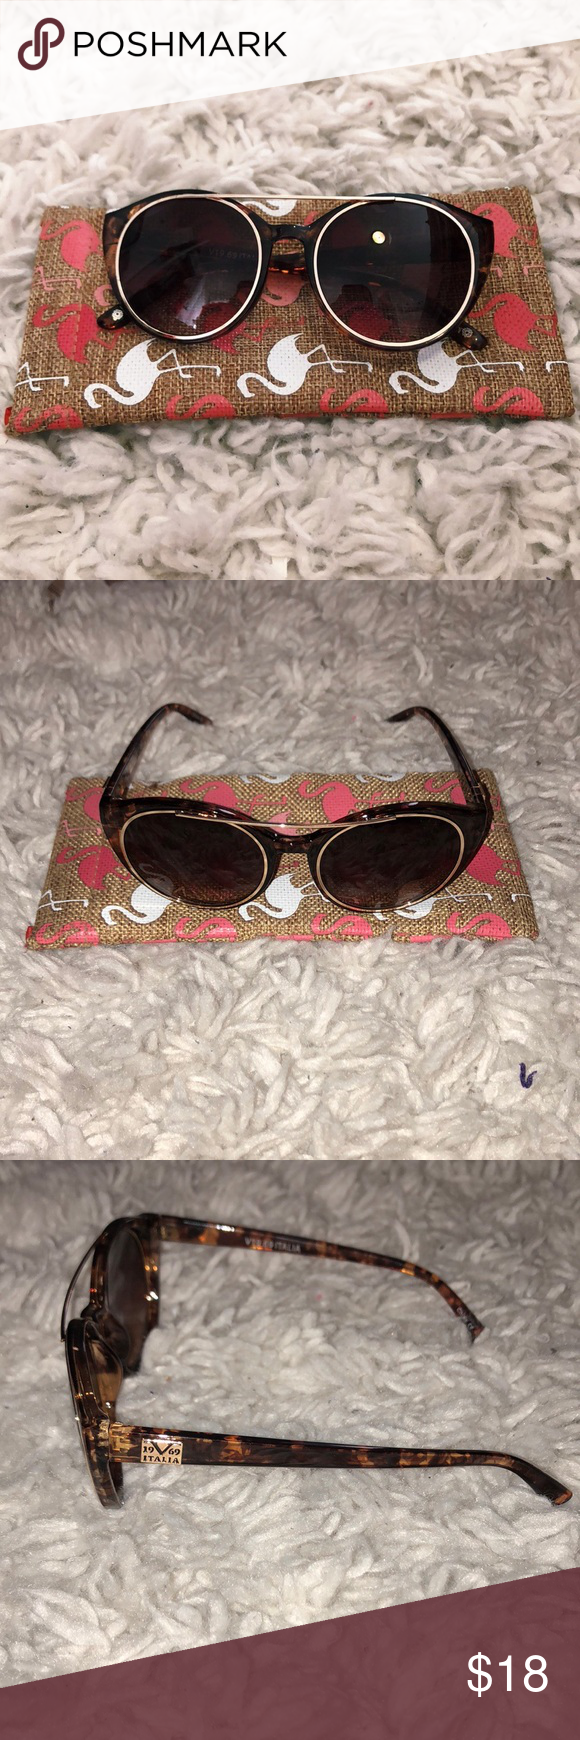 """cc5ea167cd3 Versace 19.69 Sunnies Versace 19.69 Abbigliamento Sportivo Sunnies in  Brown Tortoise. They re the """"Leola"""" style. Never worn. Case not included."""